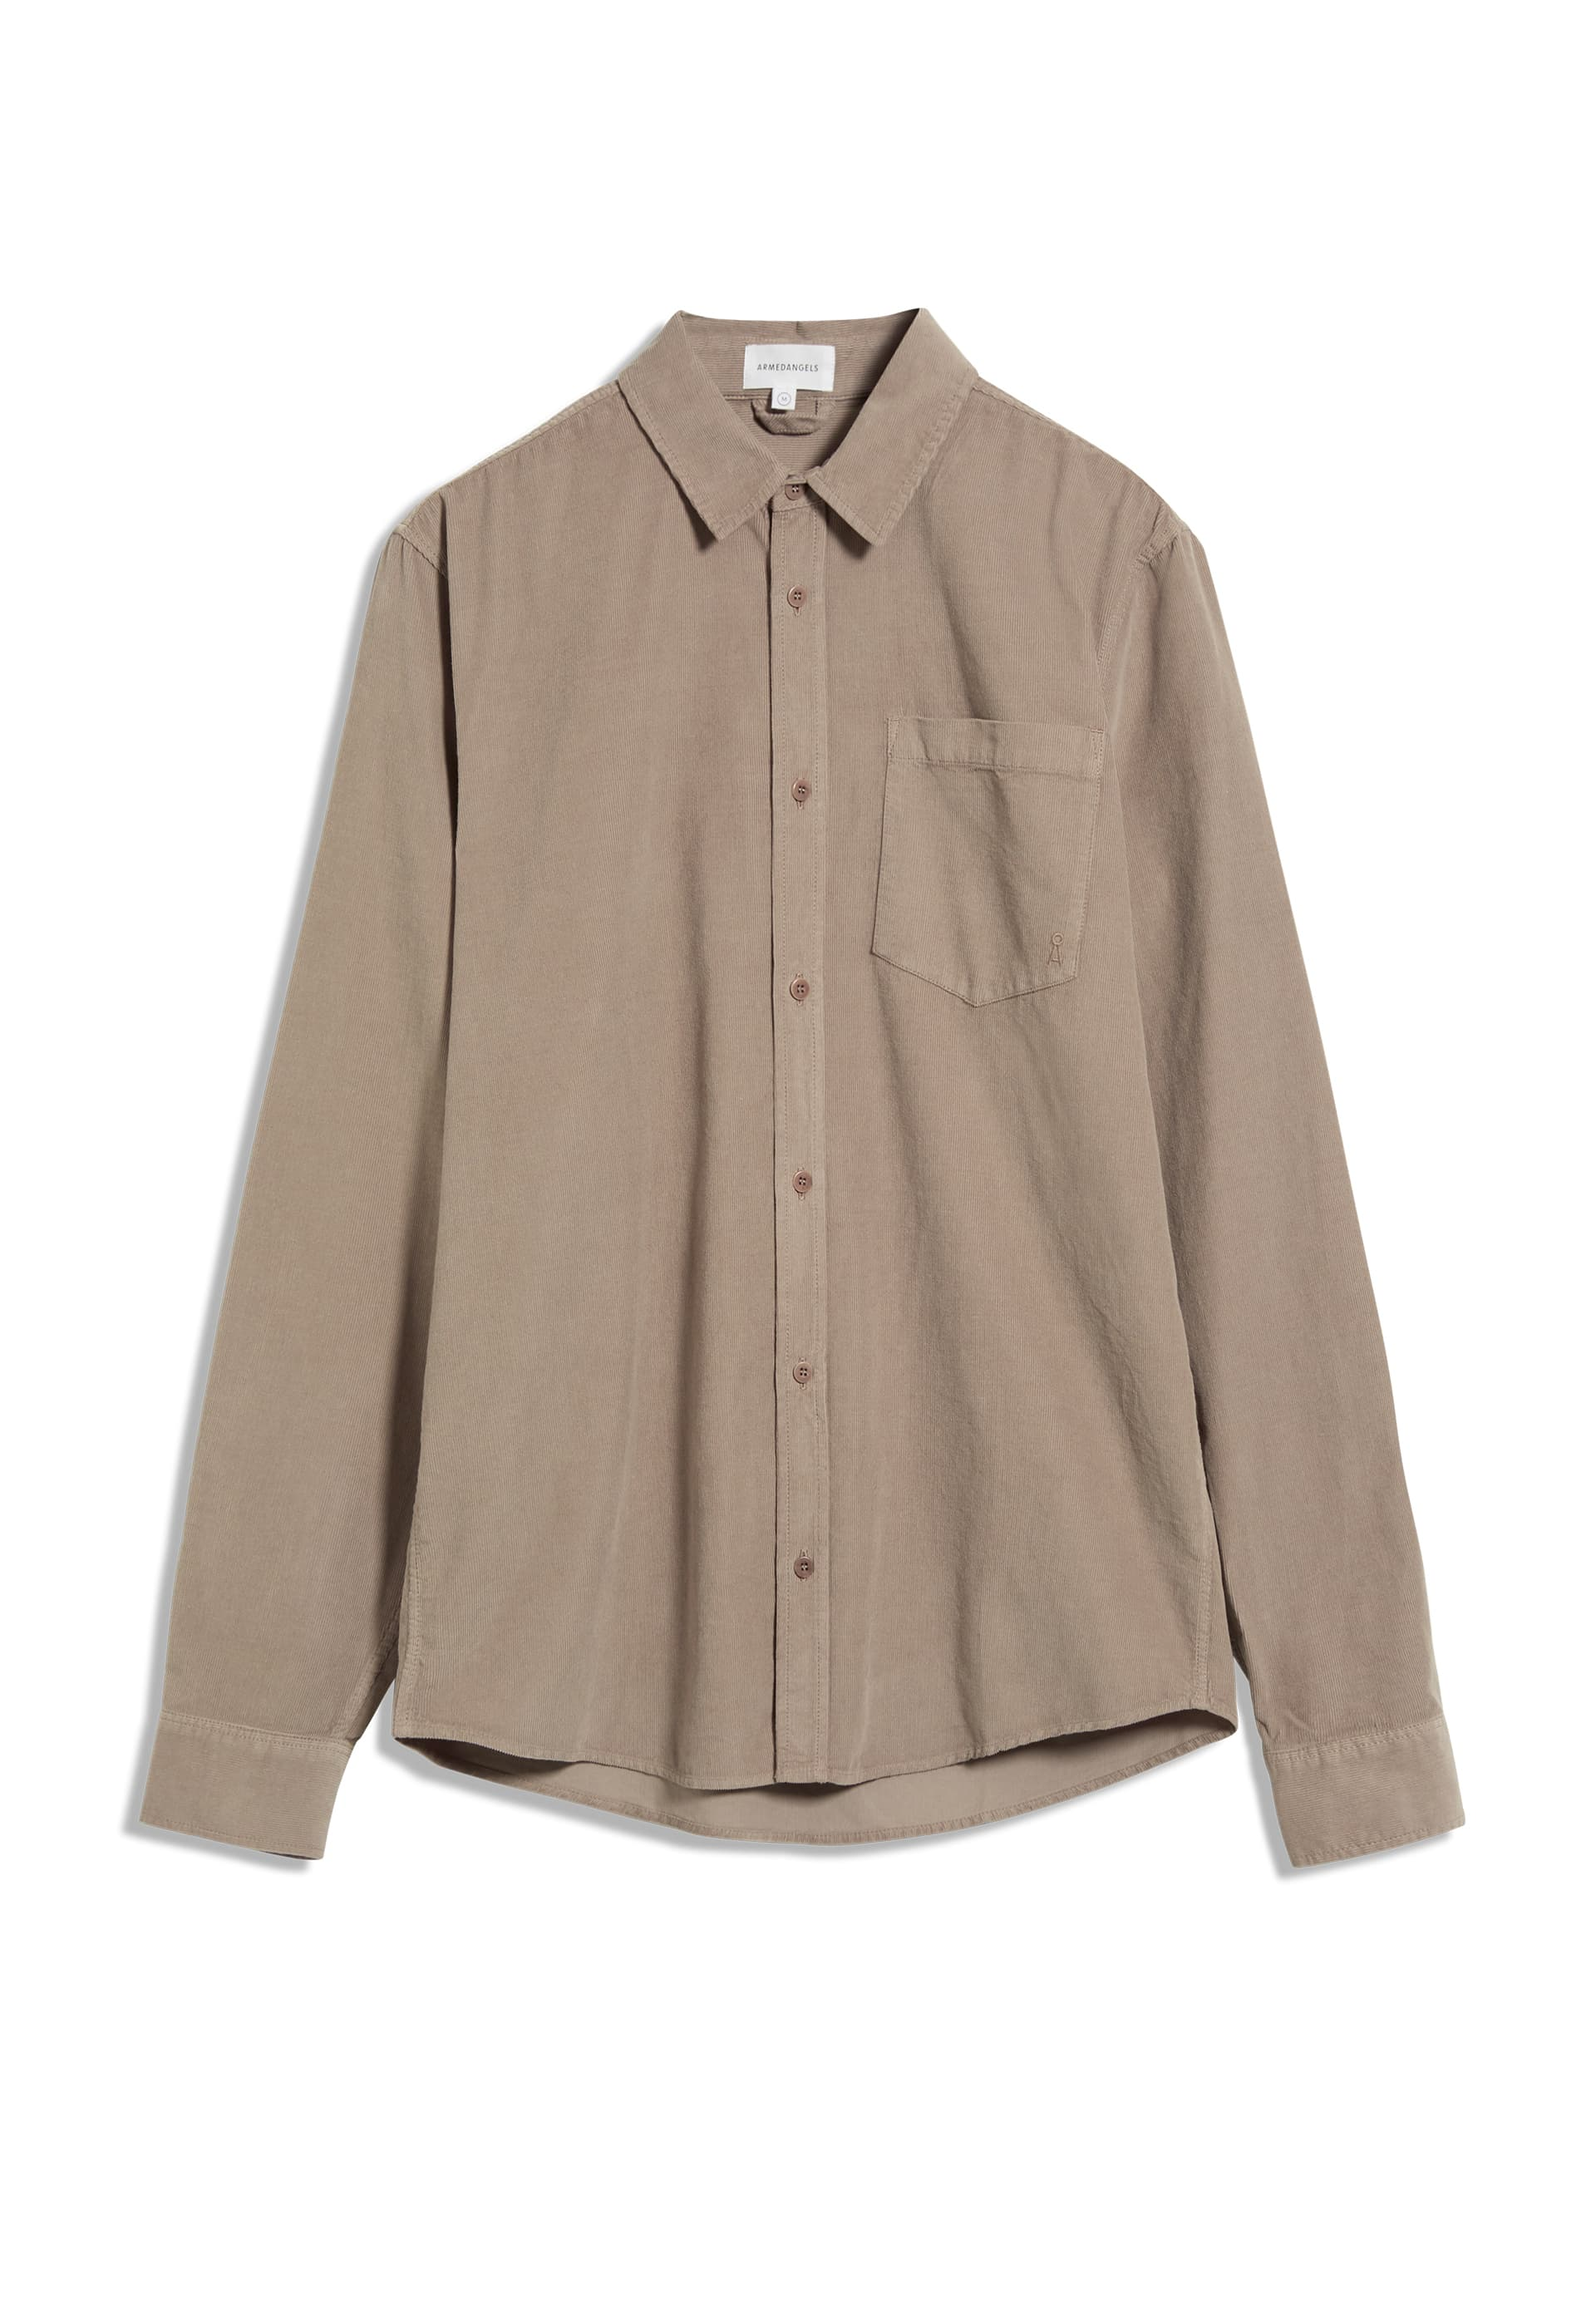 FLAAN BAABY CORD Shirt made of Organic Cotton